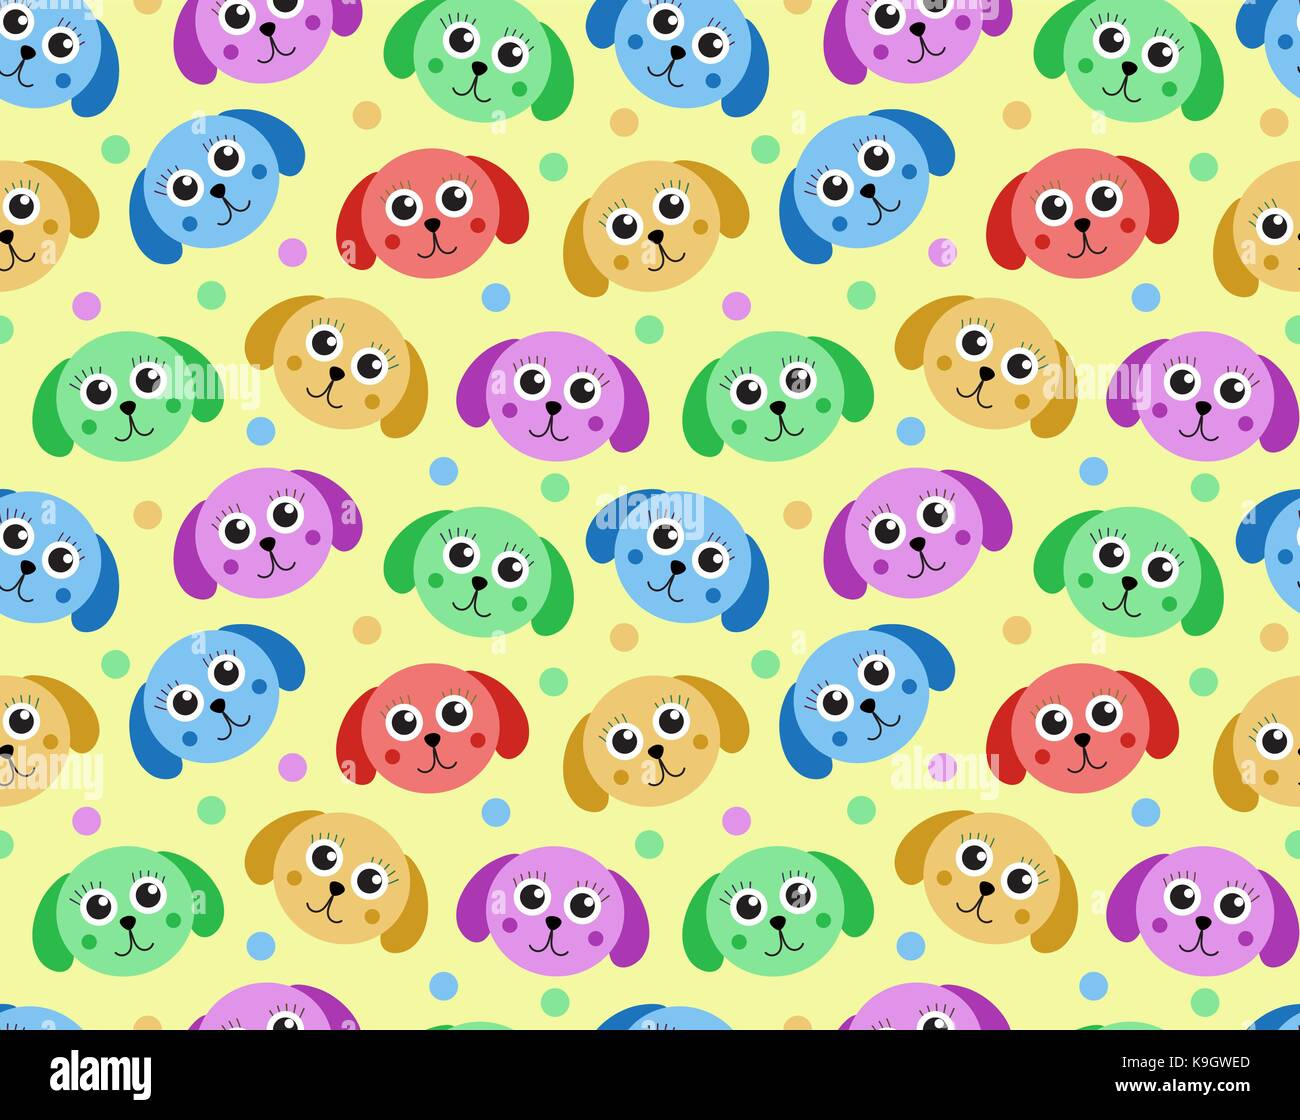 Cute puppy seamless pattern. Dog repetitive texture. Children endless background. Vector illustration. Stock Vector